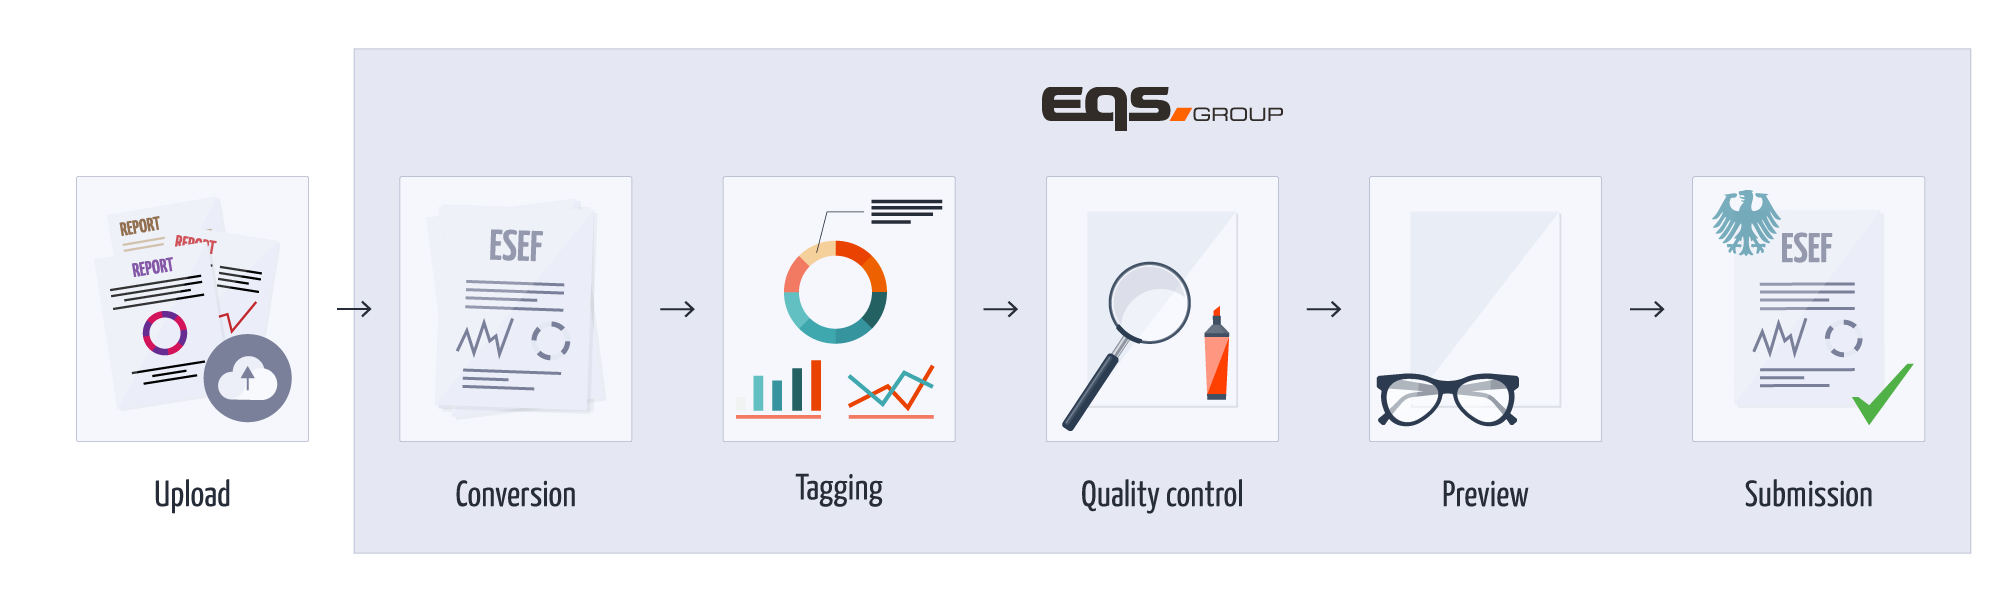 ESEF Service workflow | EQS Group